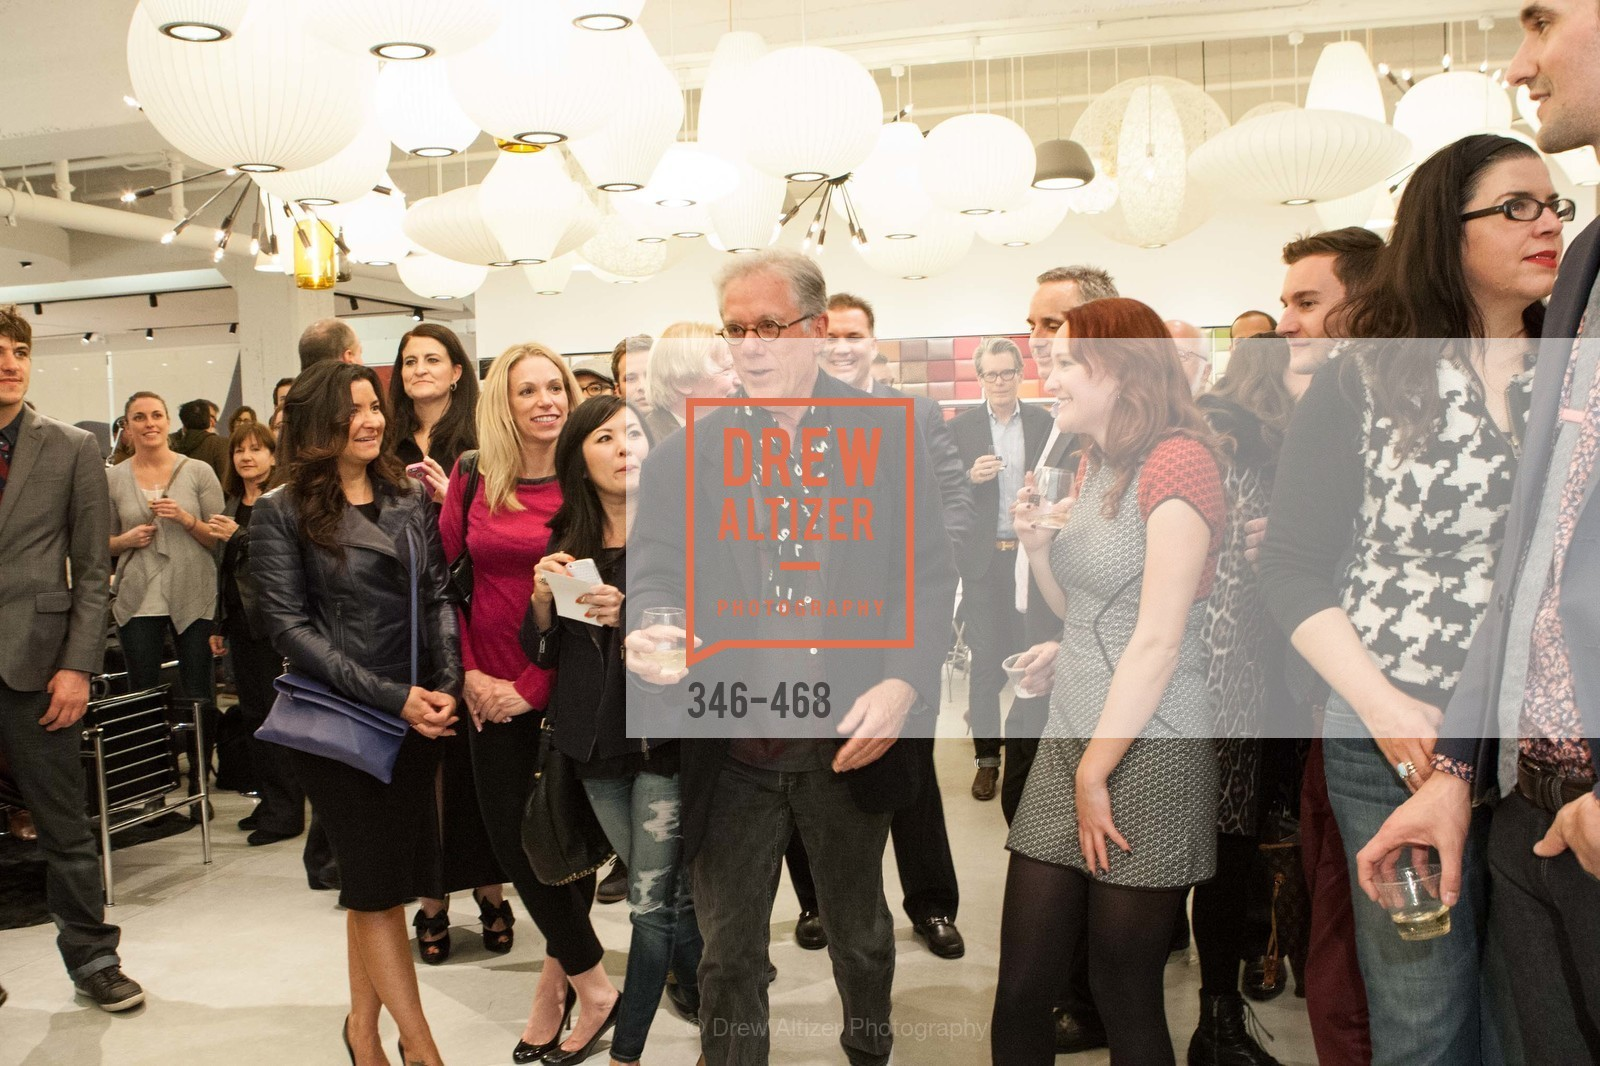 Rob Forbes, DESIGN WITHIN REACH Studio Opening, US. US, January 21st, 2014,Drew Altizer, Drew Altizer Photography, full-service agency, private events, San Francisco photographer, photographer california